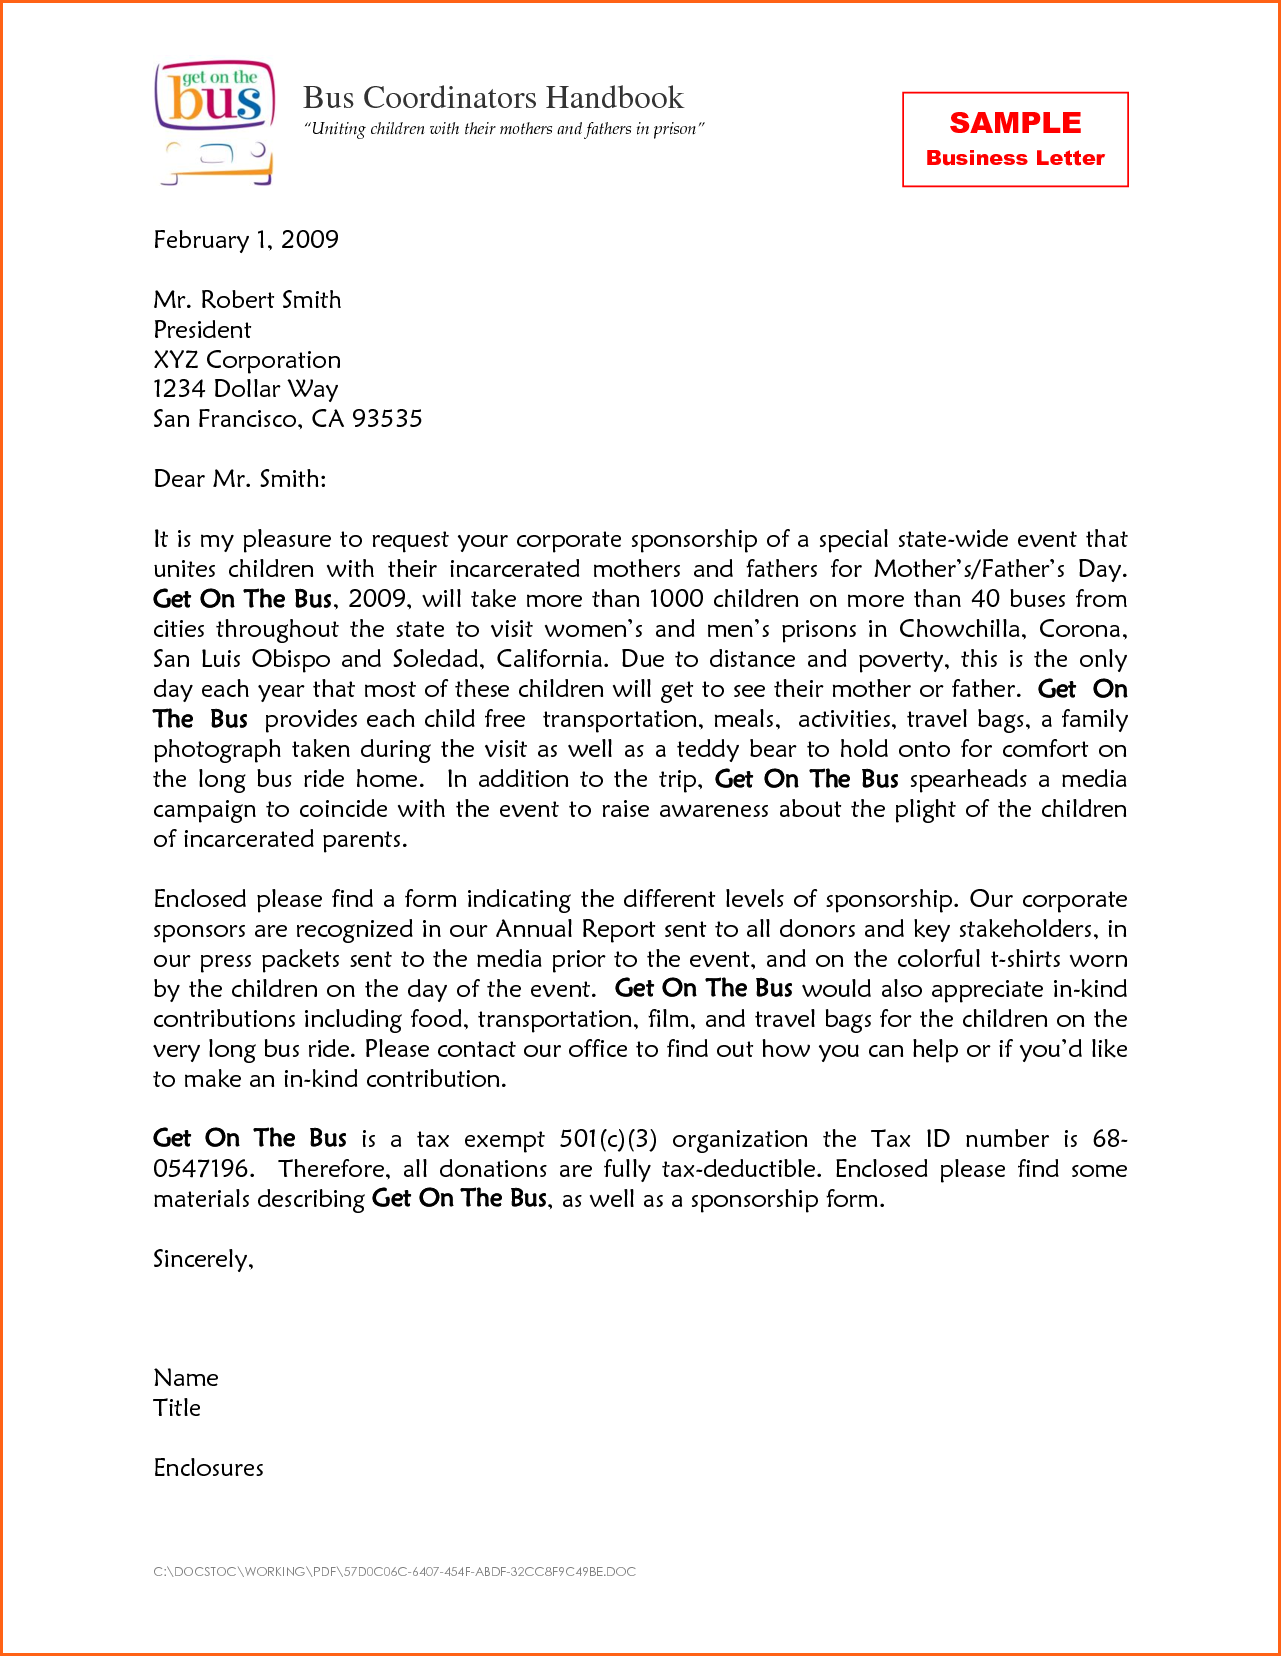 Standard Business Letter Format For Kids Sample Examples Students